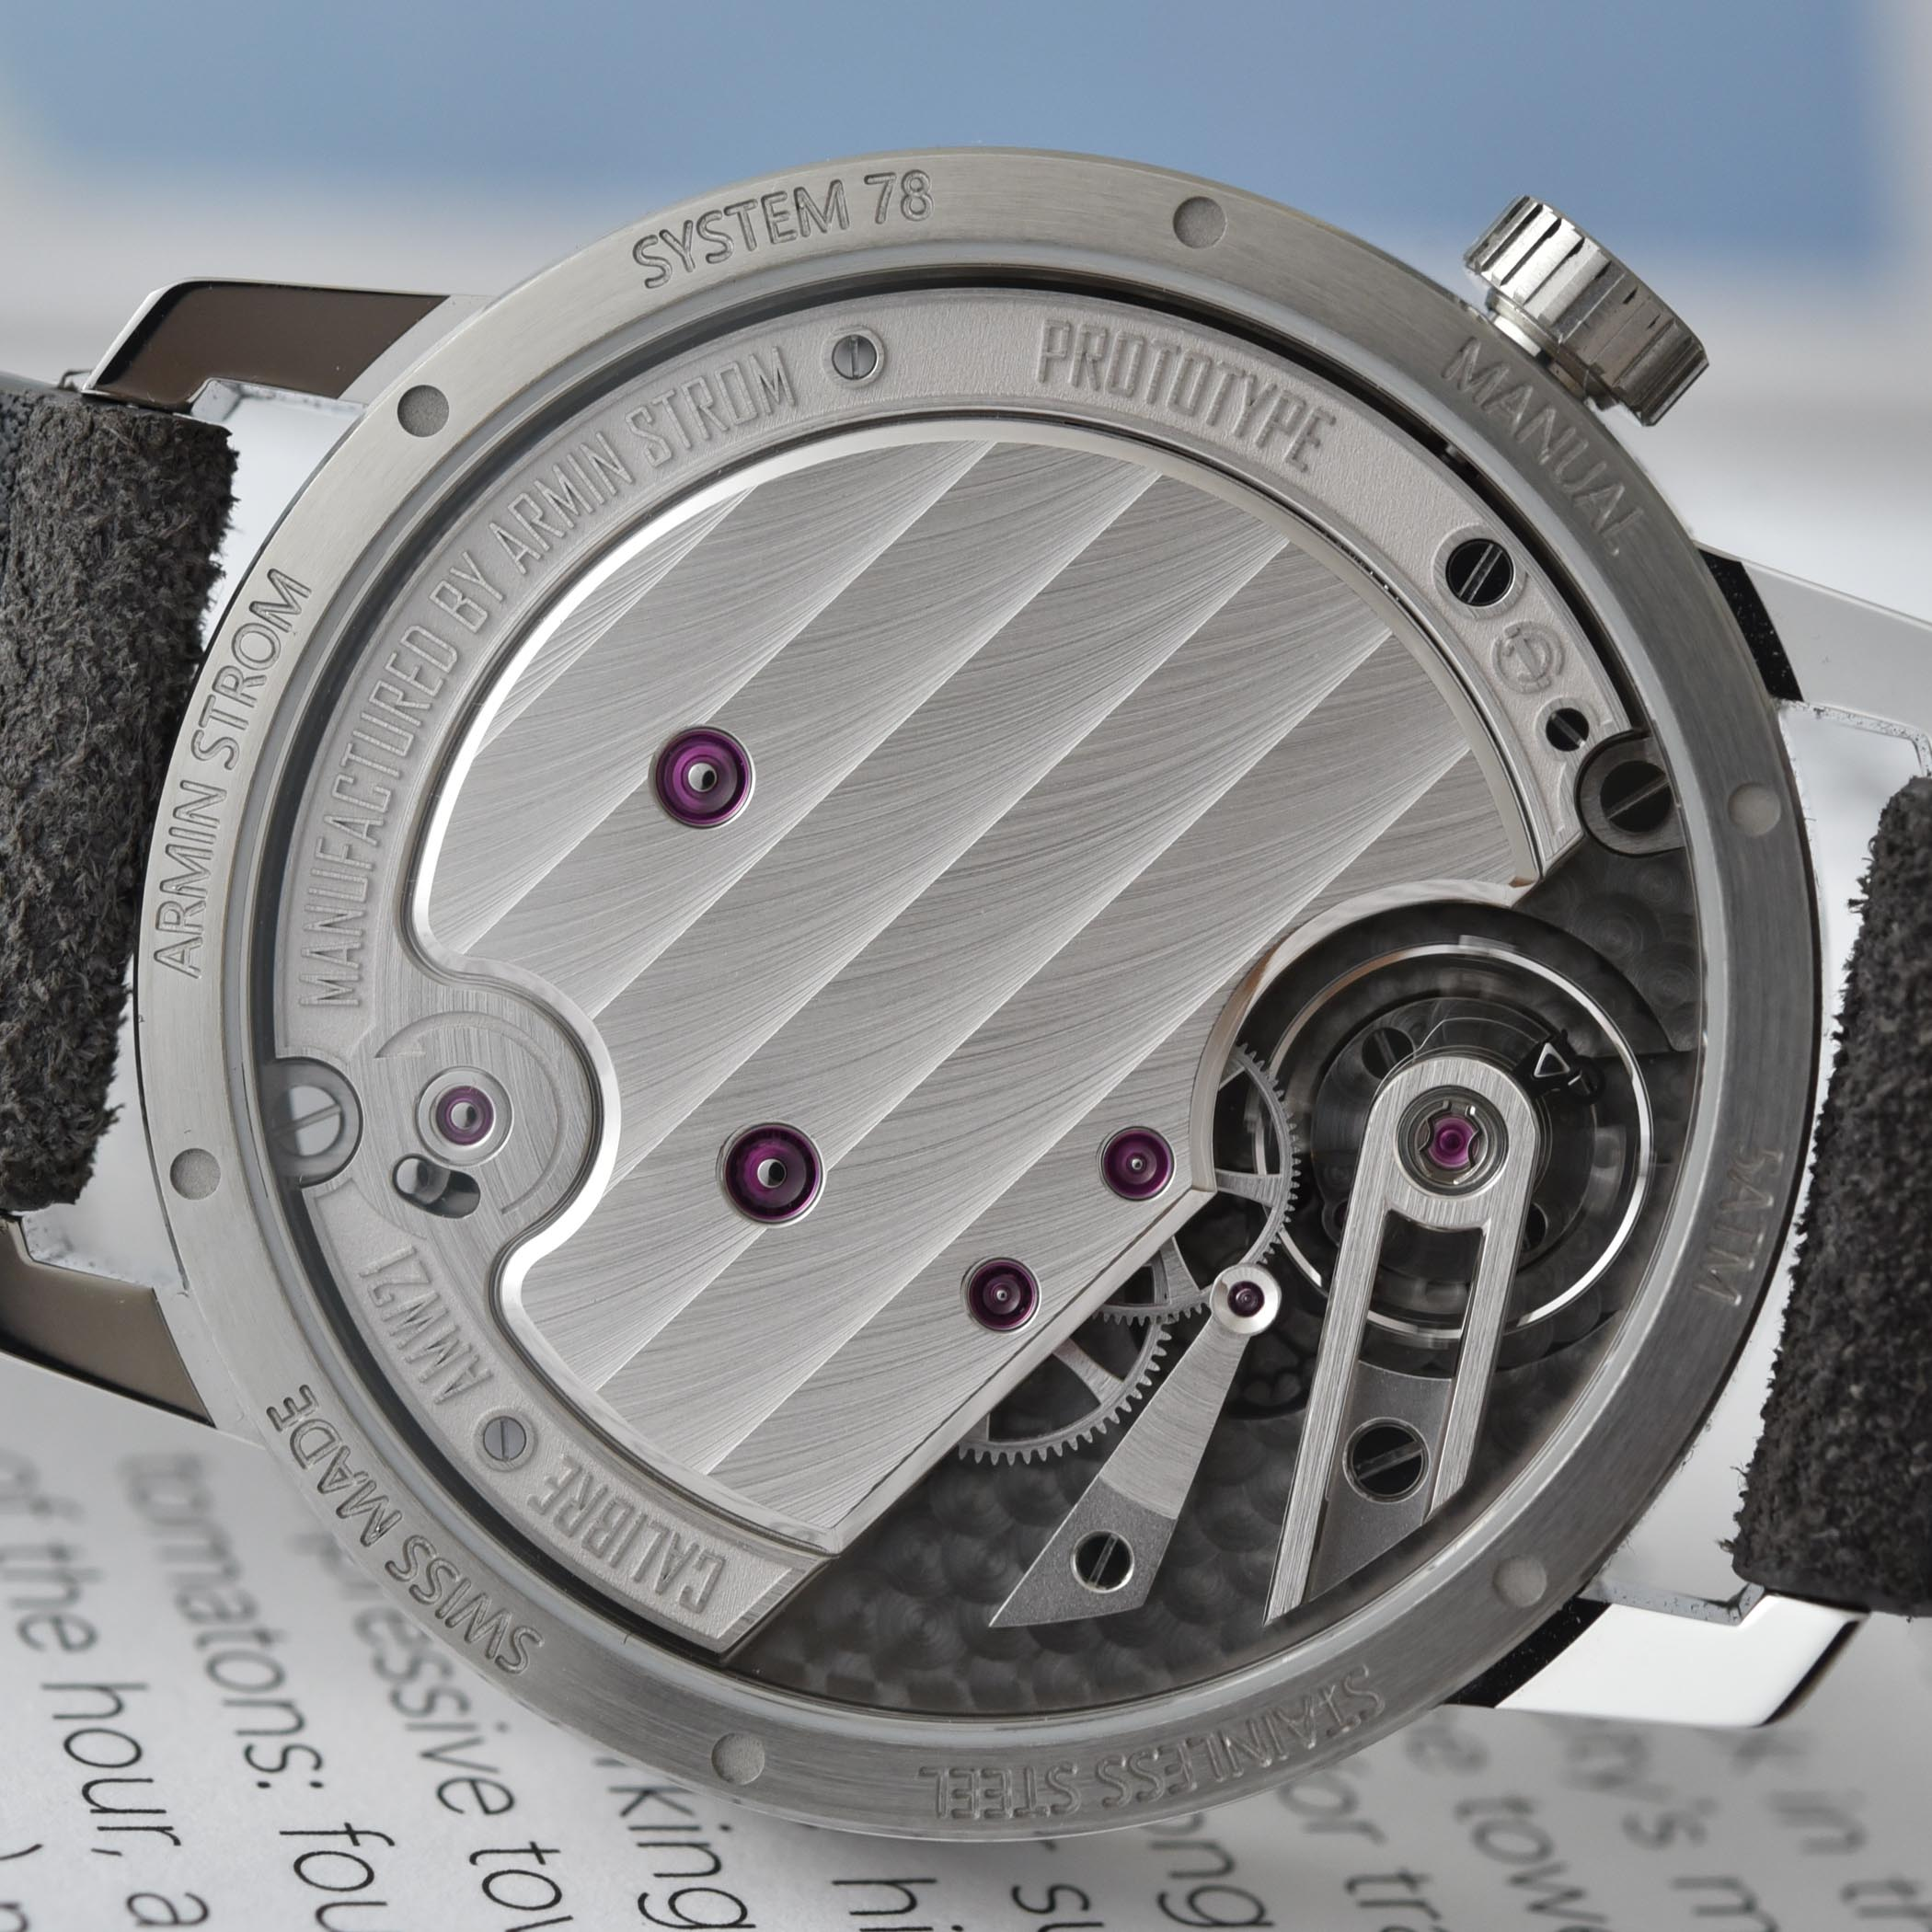 Armin Strom Tribute 1 First Edition - hands-on - 5